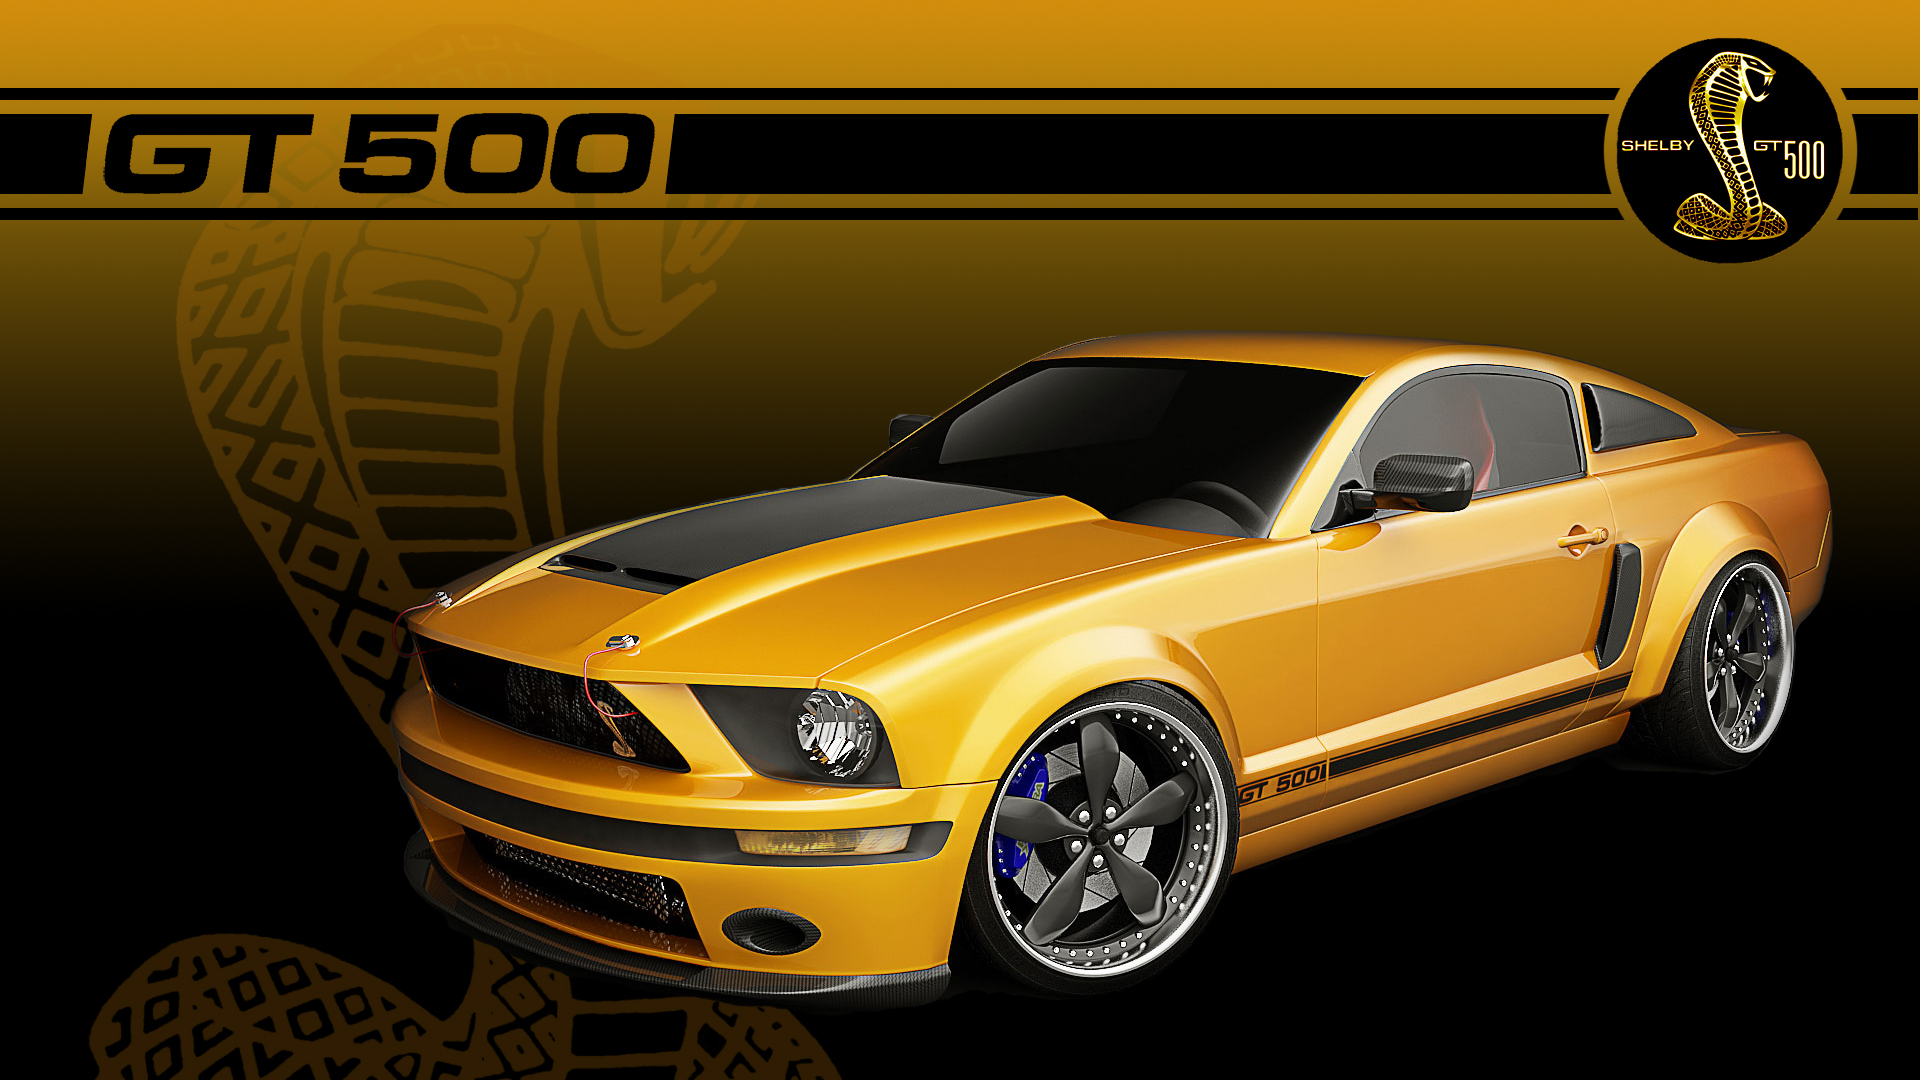 Shelby gt500 full hd wallpaper and hintergrund 1920x1080 - Wallpaper mustang shelby gt500 ...